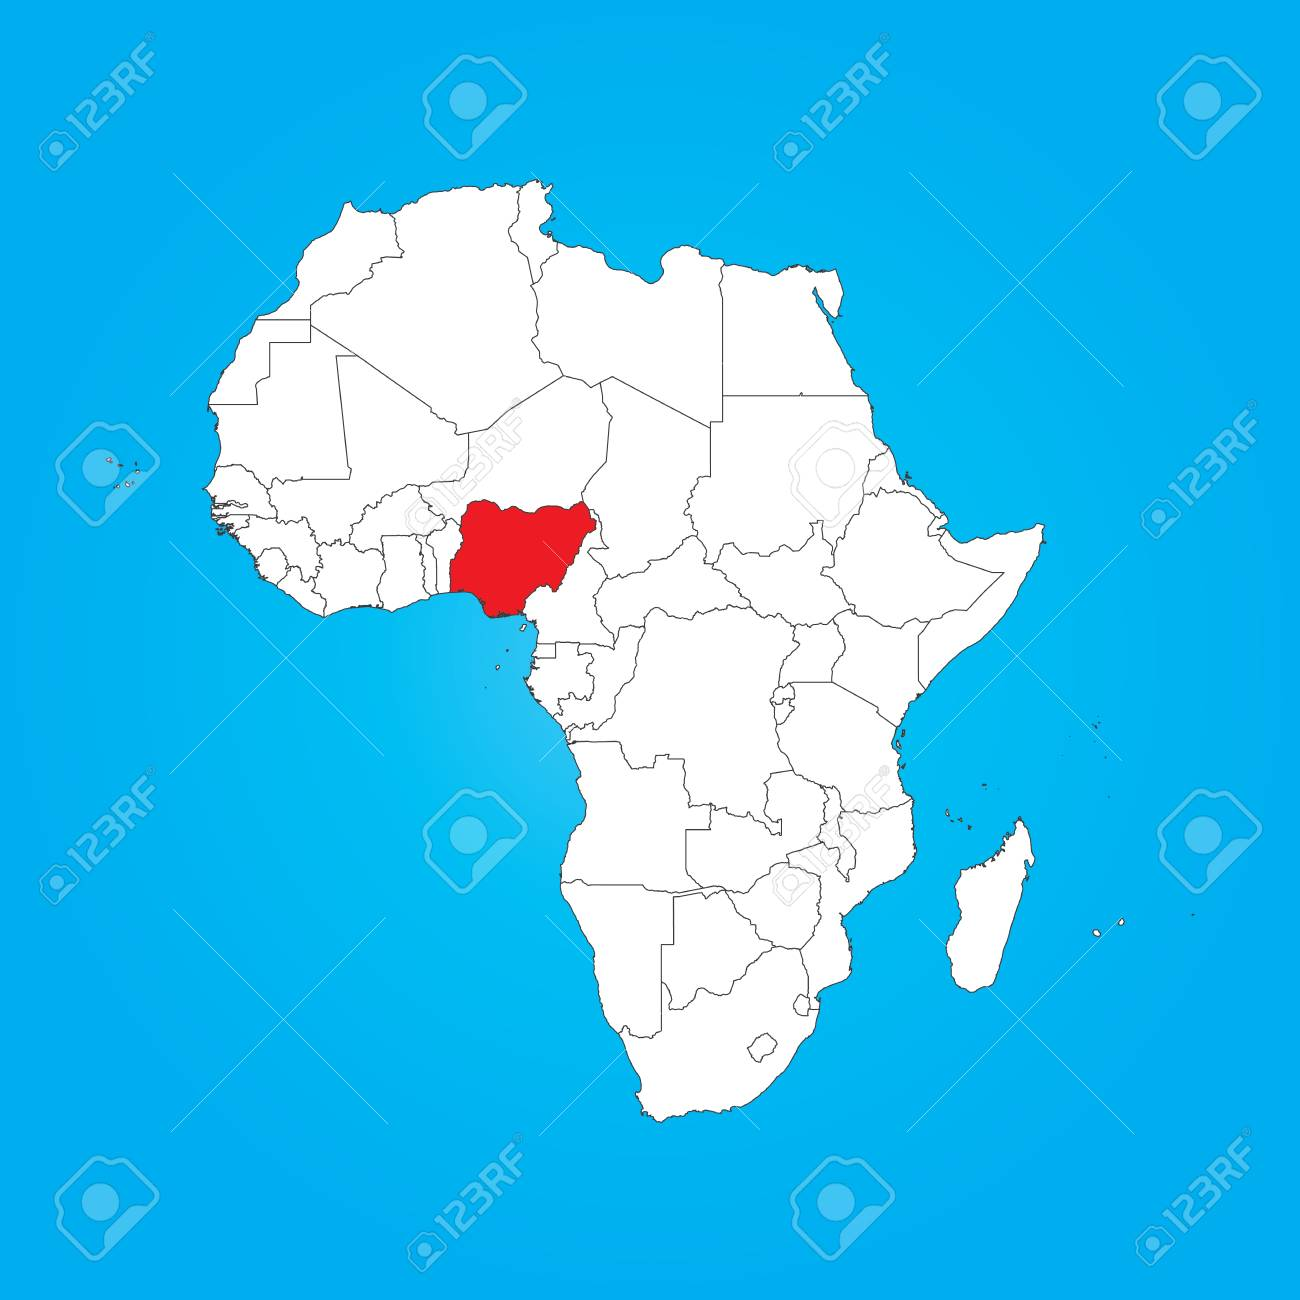 A Map of Africa with a selected country of Nigeria - 32386811